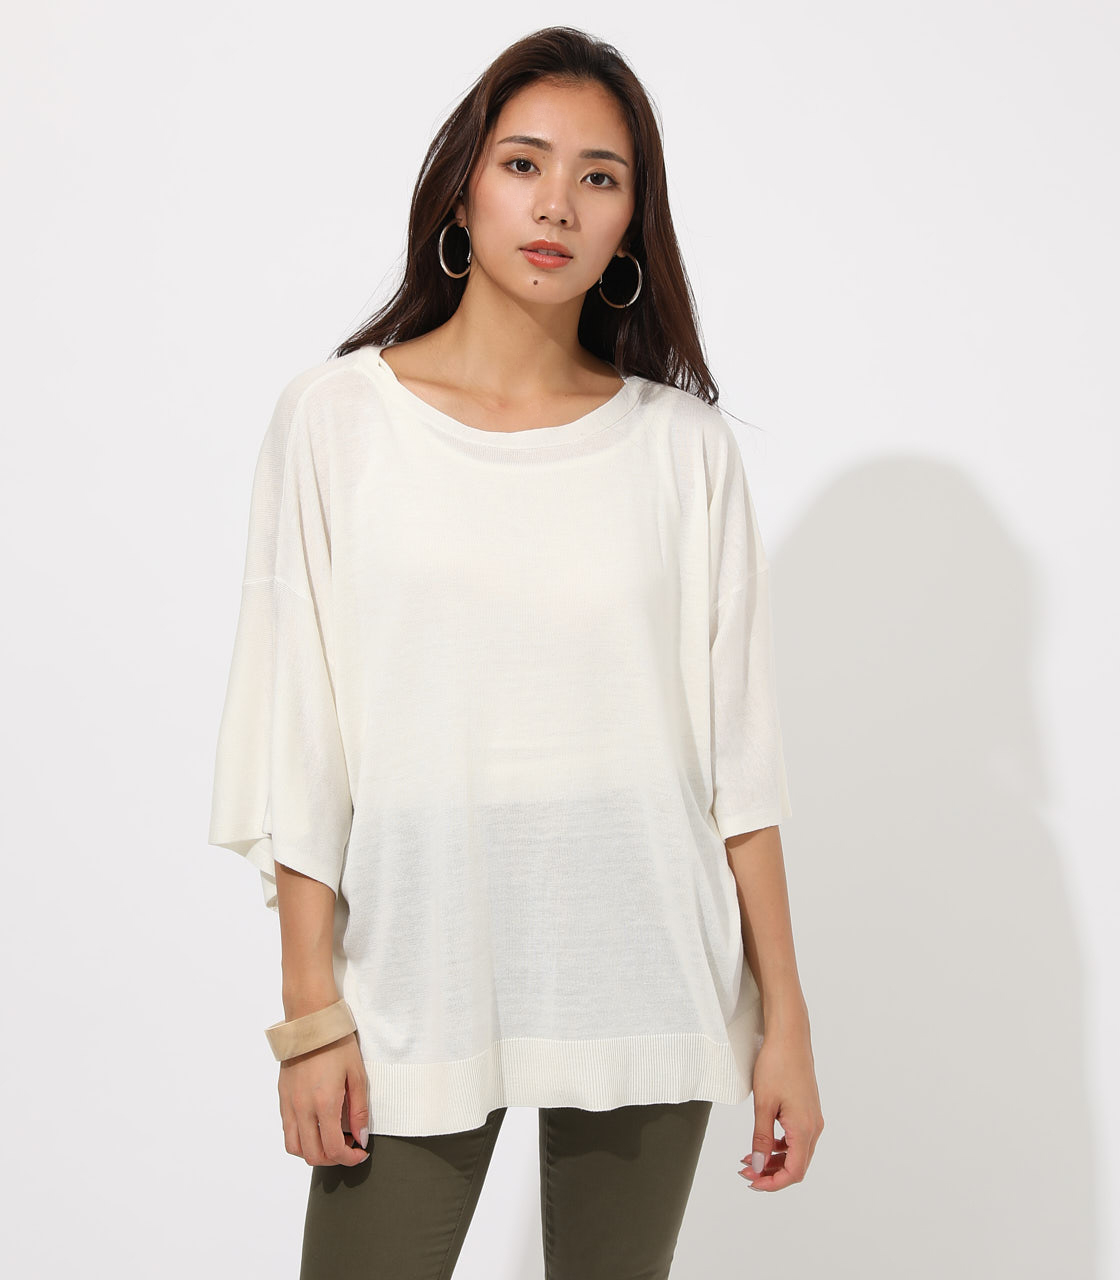 【AZUL BY MOUSSY】SQUARE LOOSE KNIT TOPS 詳細画像 O/WHT 4